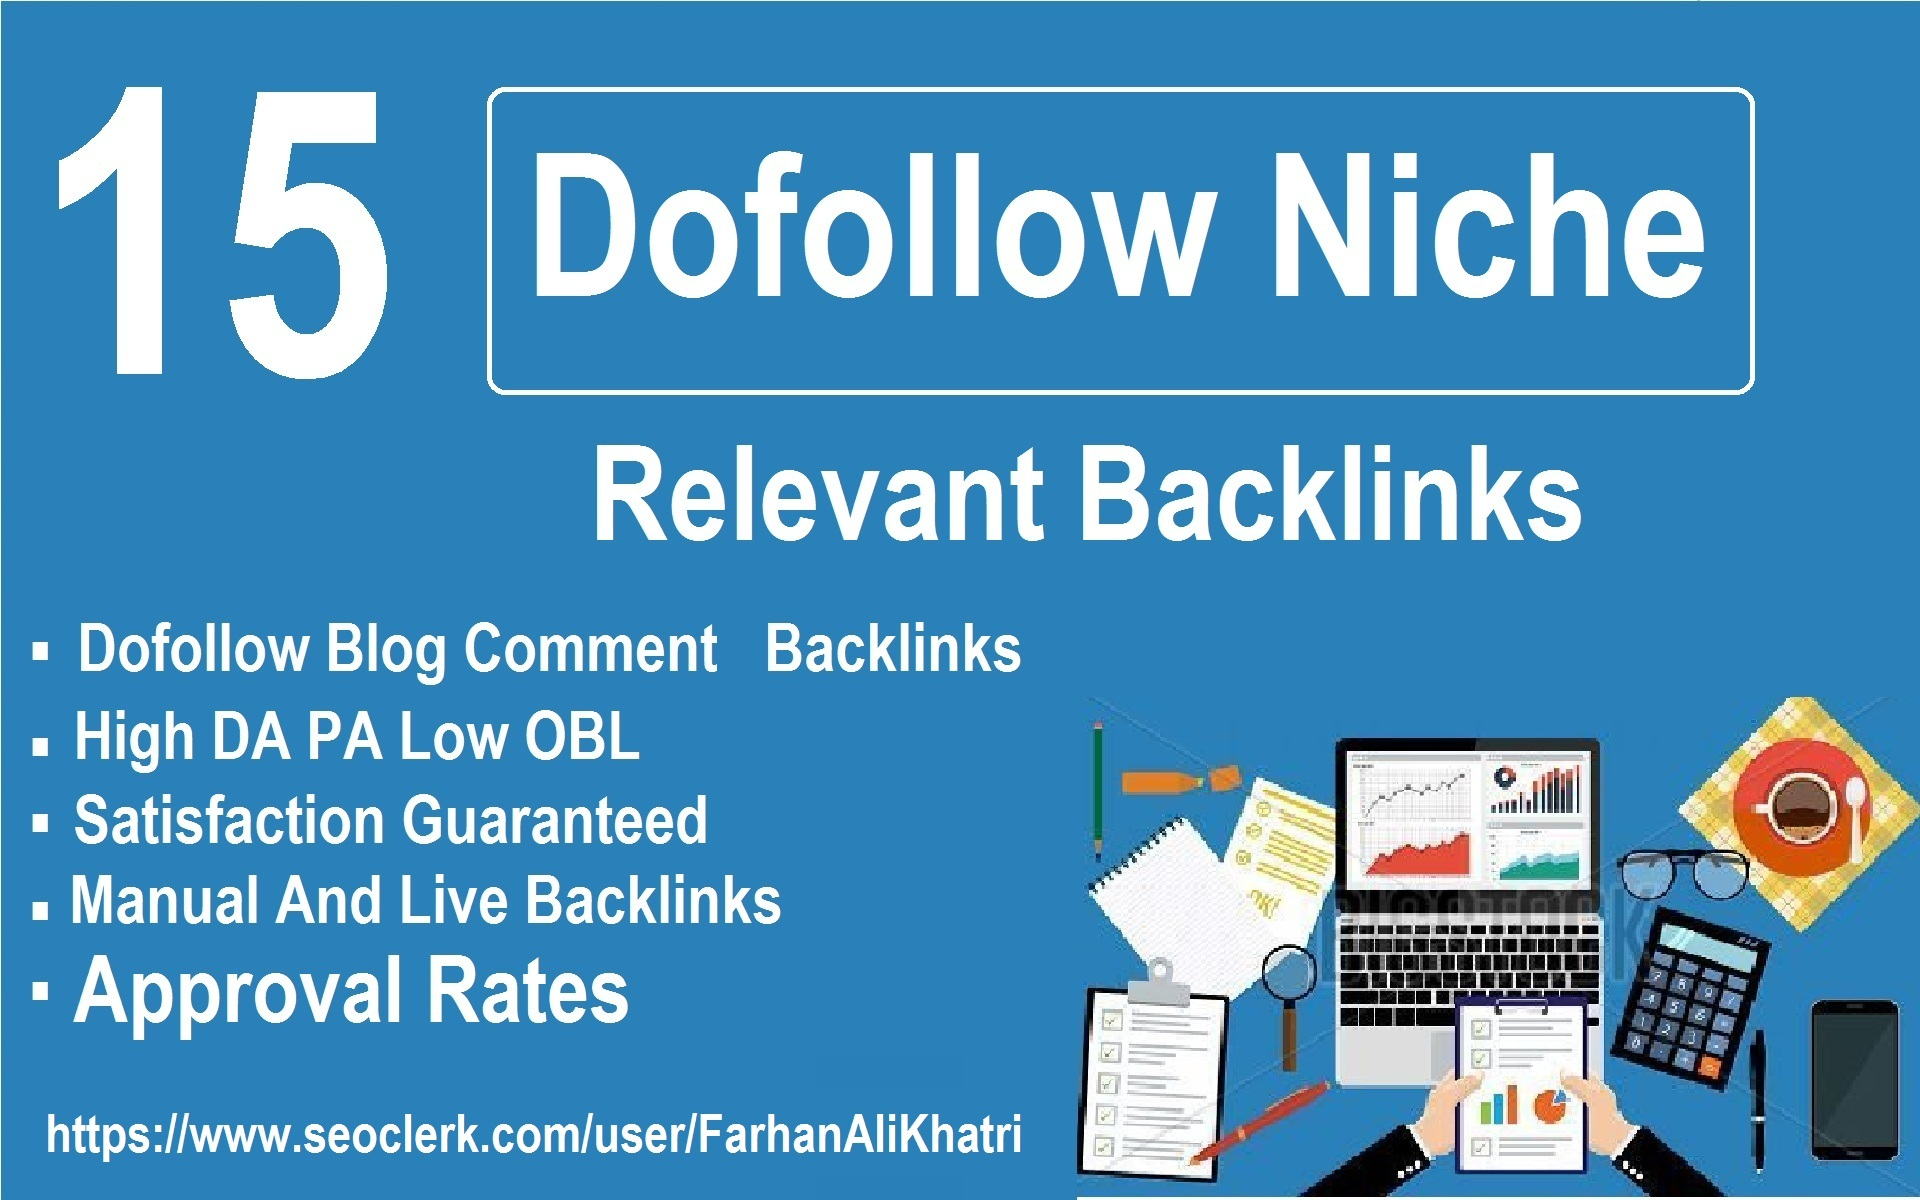 I Will Do 15 Niche Relevant Seo Service Dofollow Backlinks